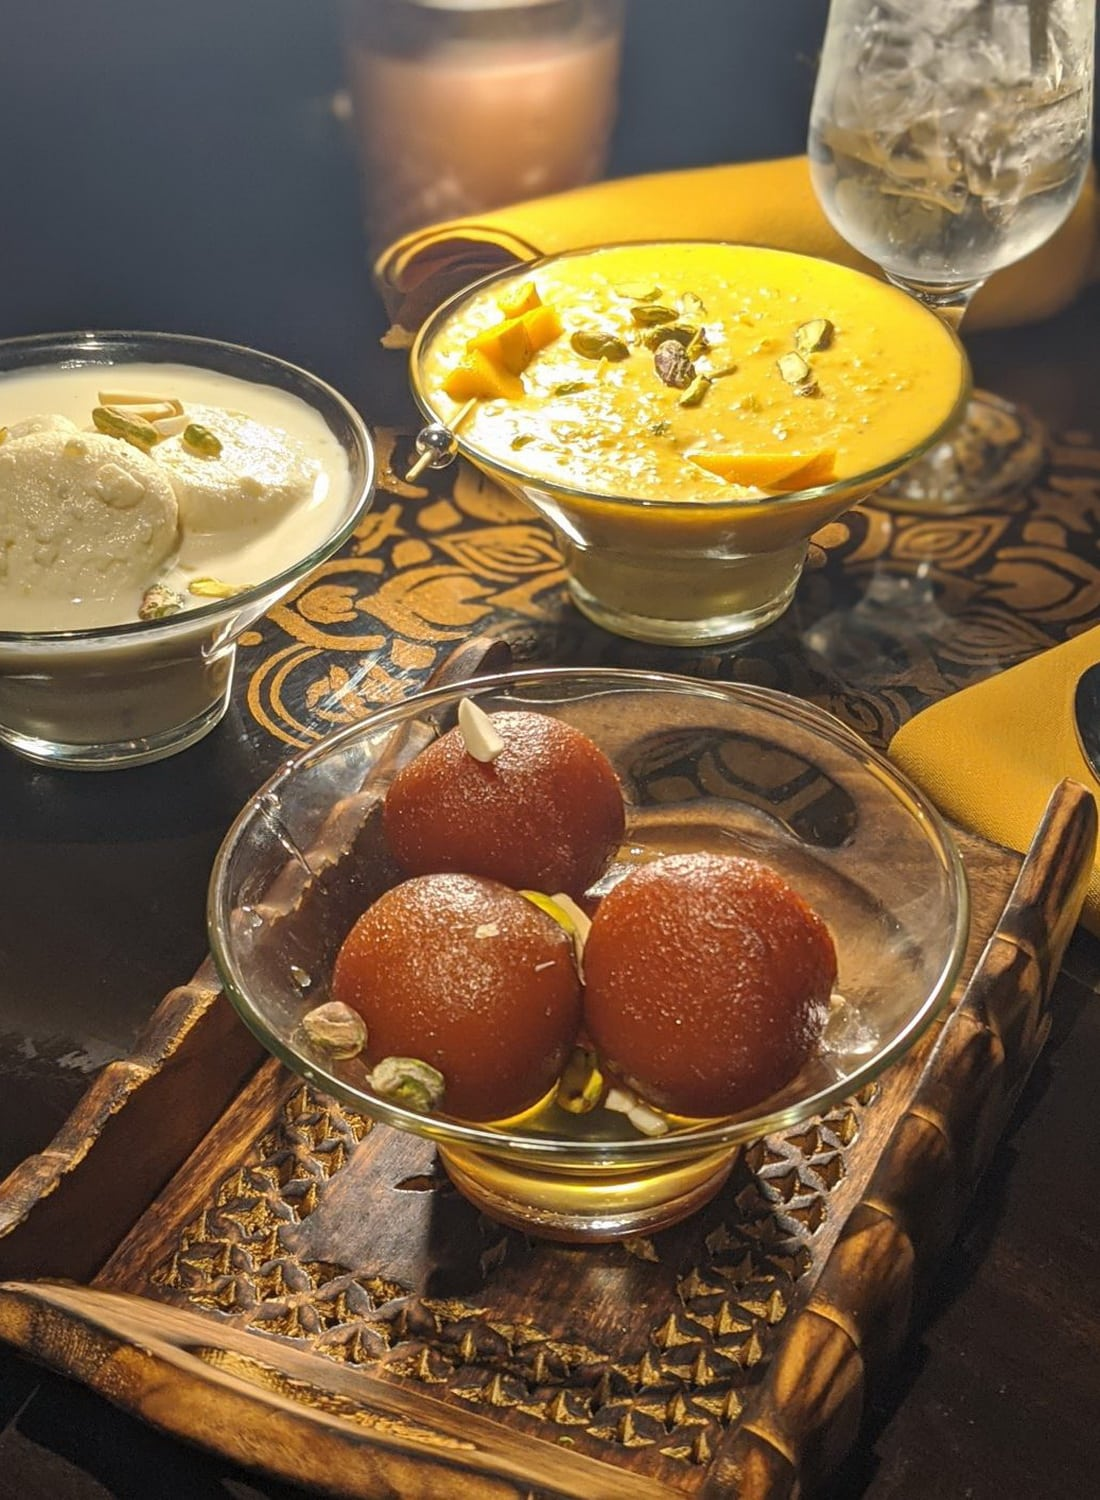 COCONUT GULAB JAMUN At Sula Indian